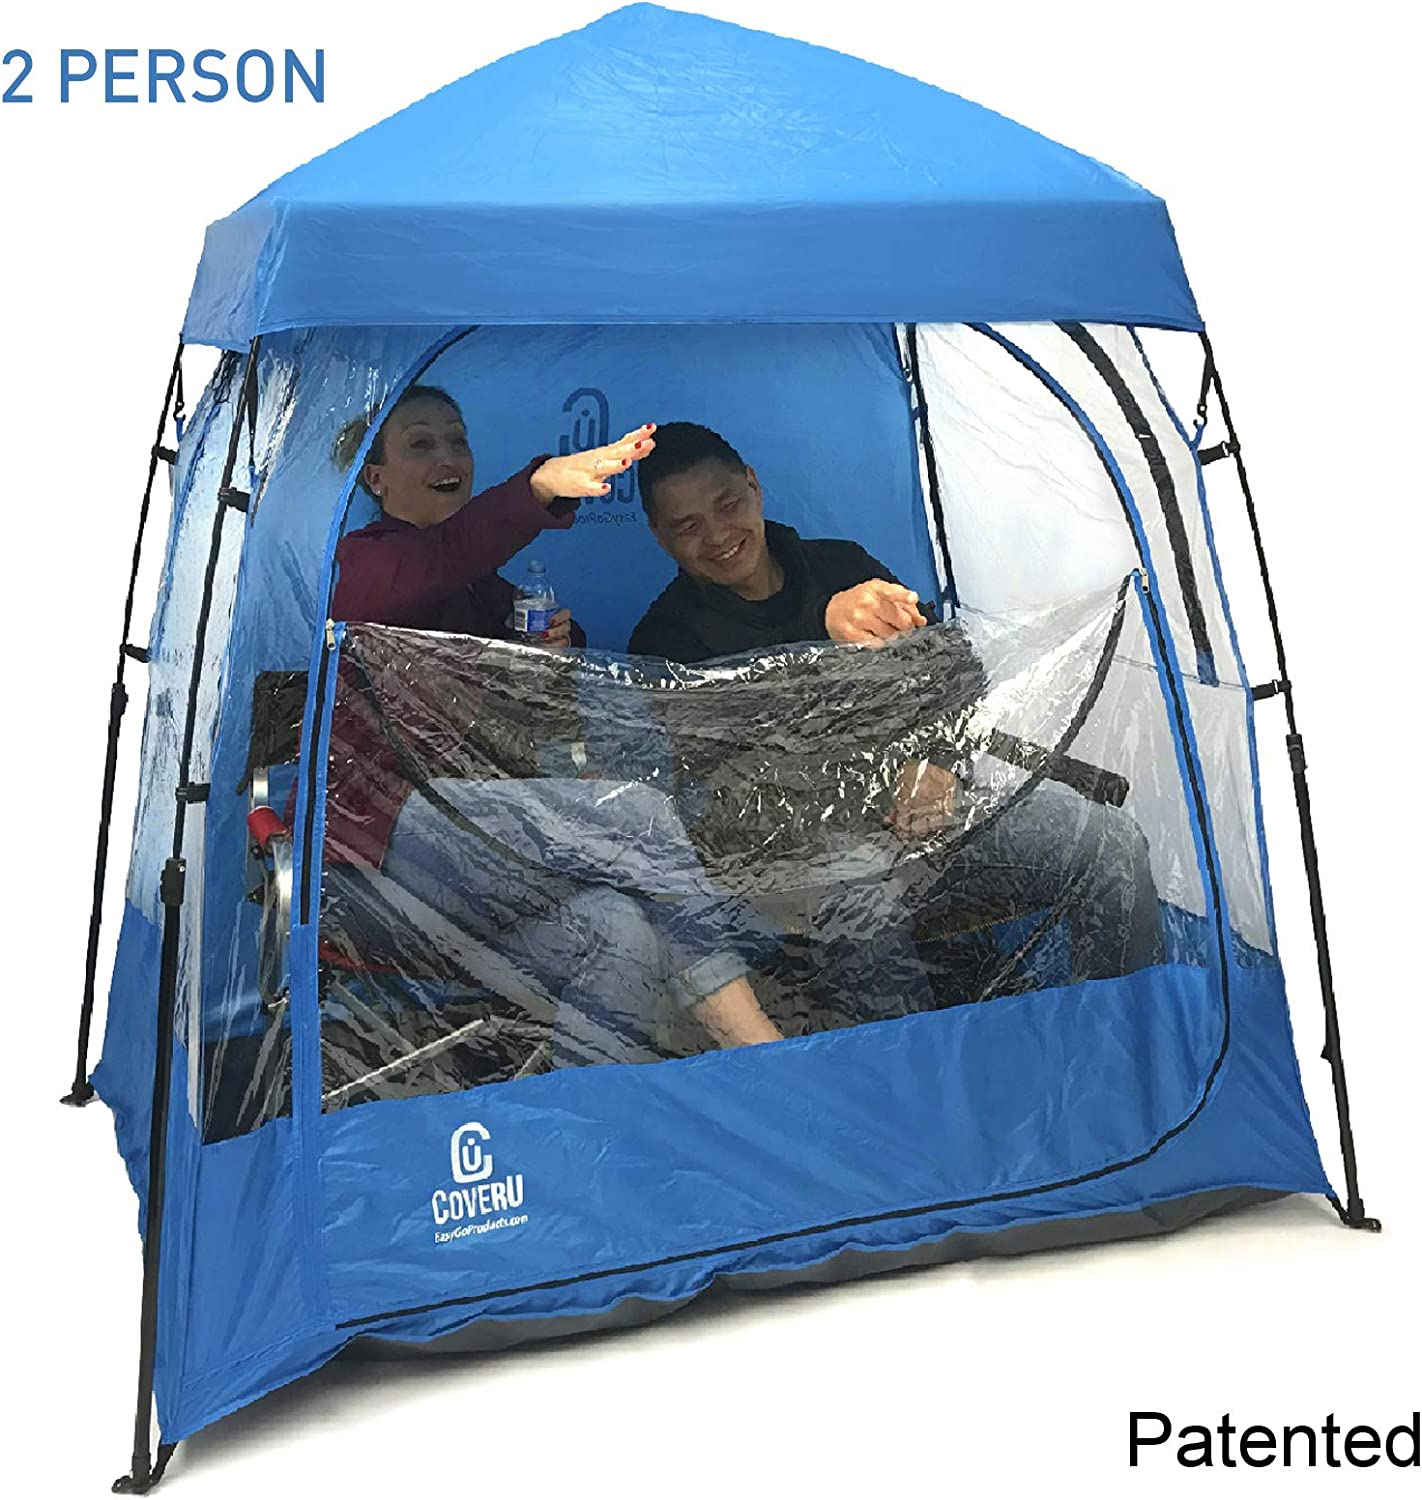 EasyGoProducts CoverU Sports Shelter Selling and selling Pod Brand new –Weather †Tent